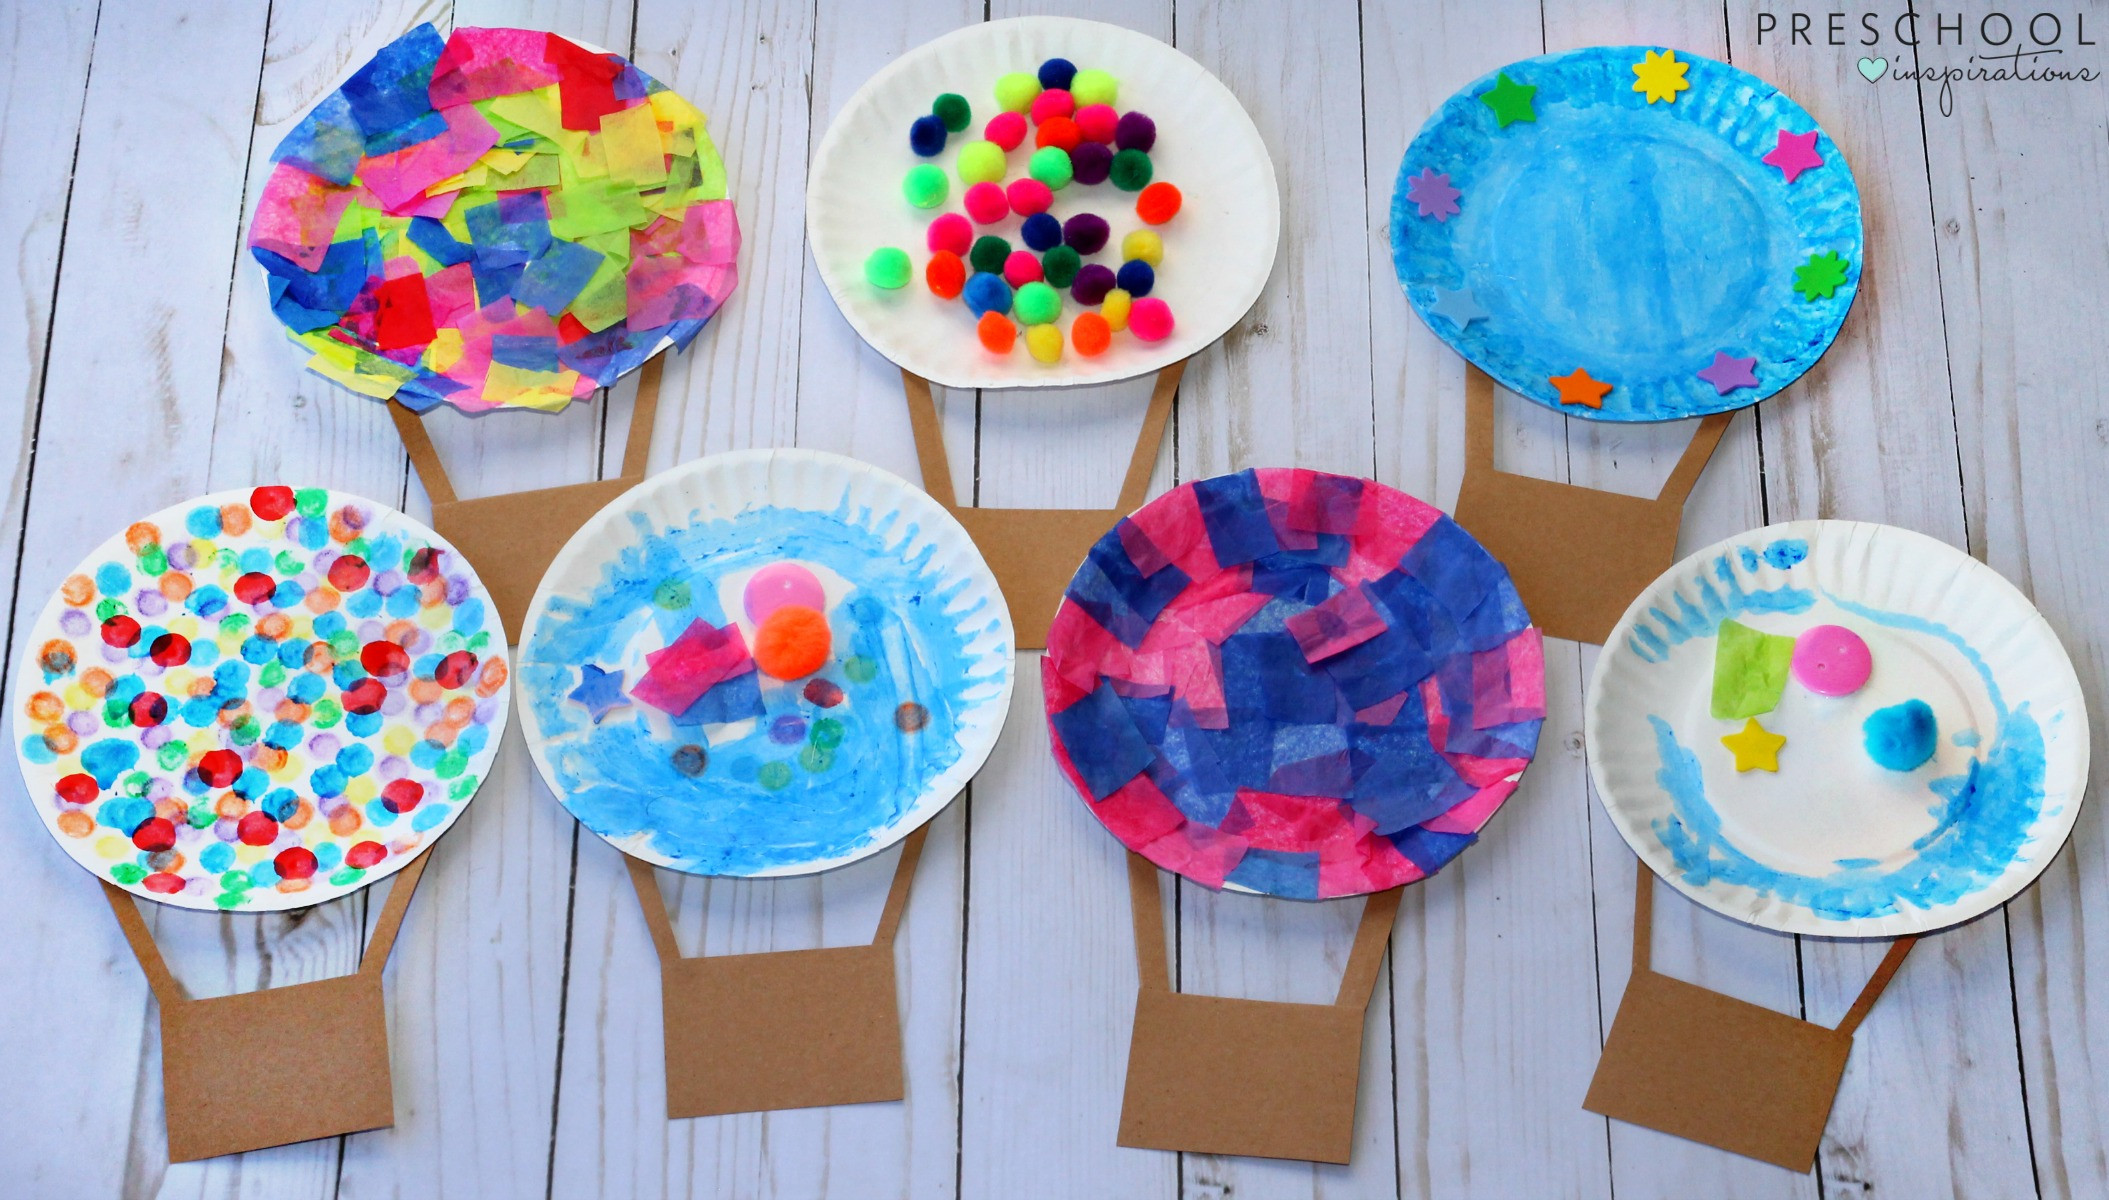 Best ideas about Art Craft For Kids . Save or Pin Hot Air Balloon Process Art Activity Preschool Inspirations Now.